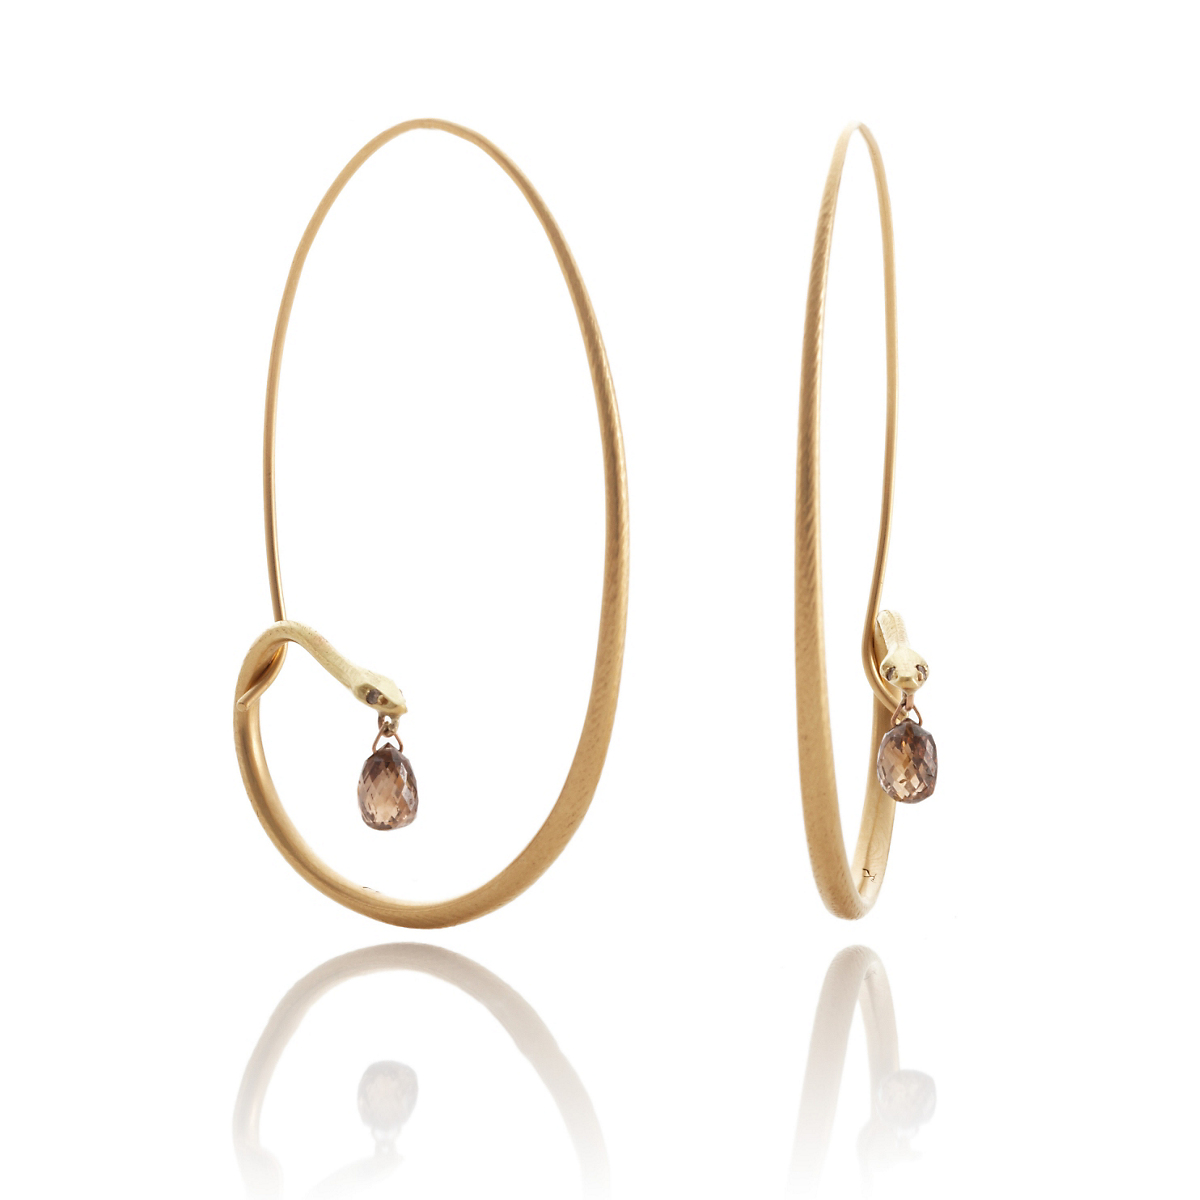 Gabriella Kiss Large Gold Diamond Snake Hoop Earrings